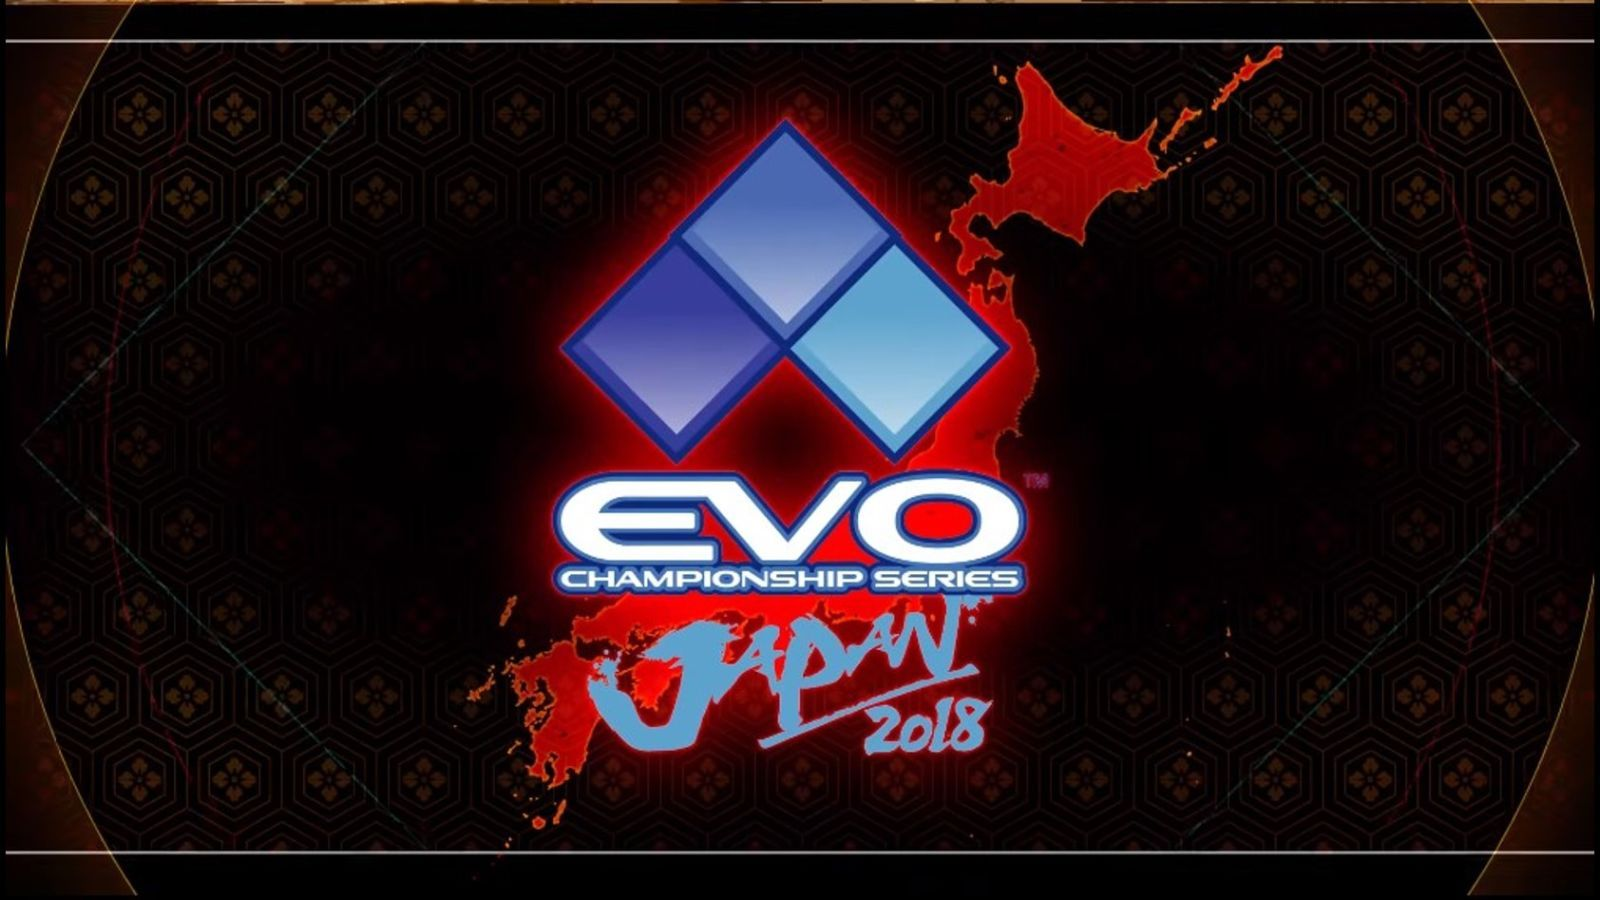 Evo Japan 2018 Ends Up a Million Dollars in the Red